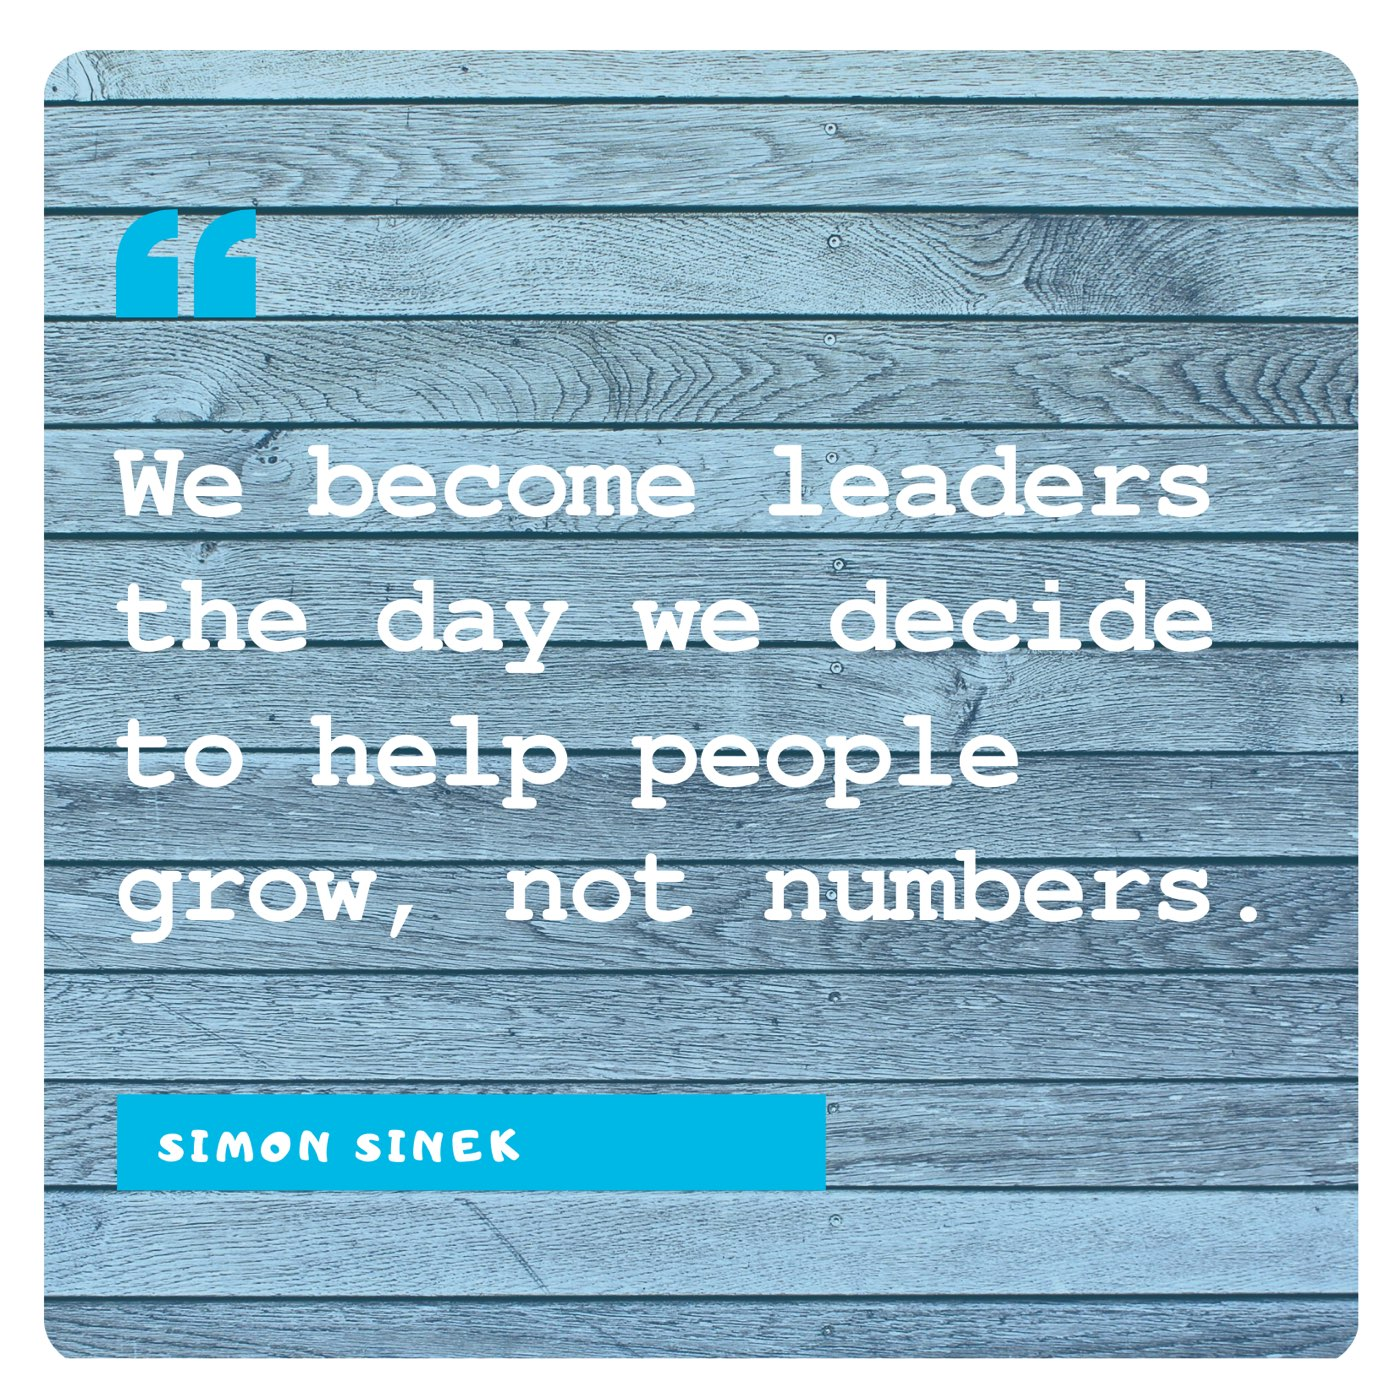 Simon Sinek: Growth